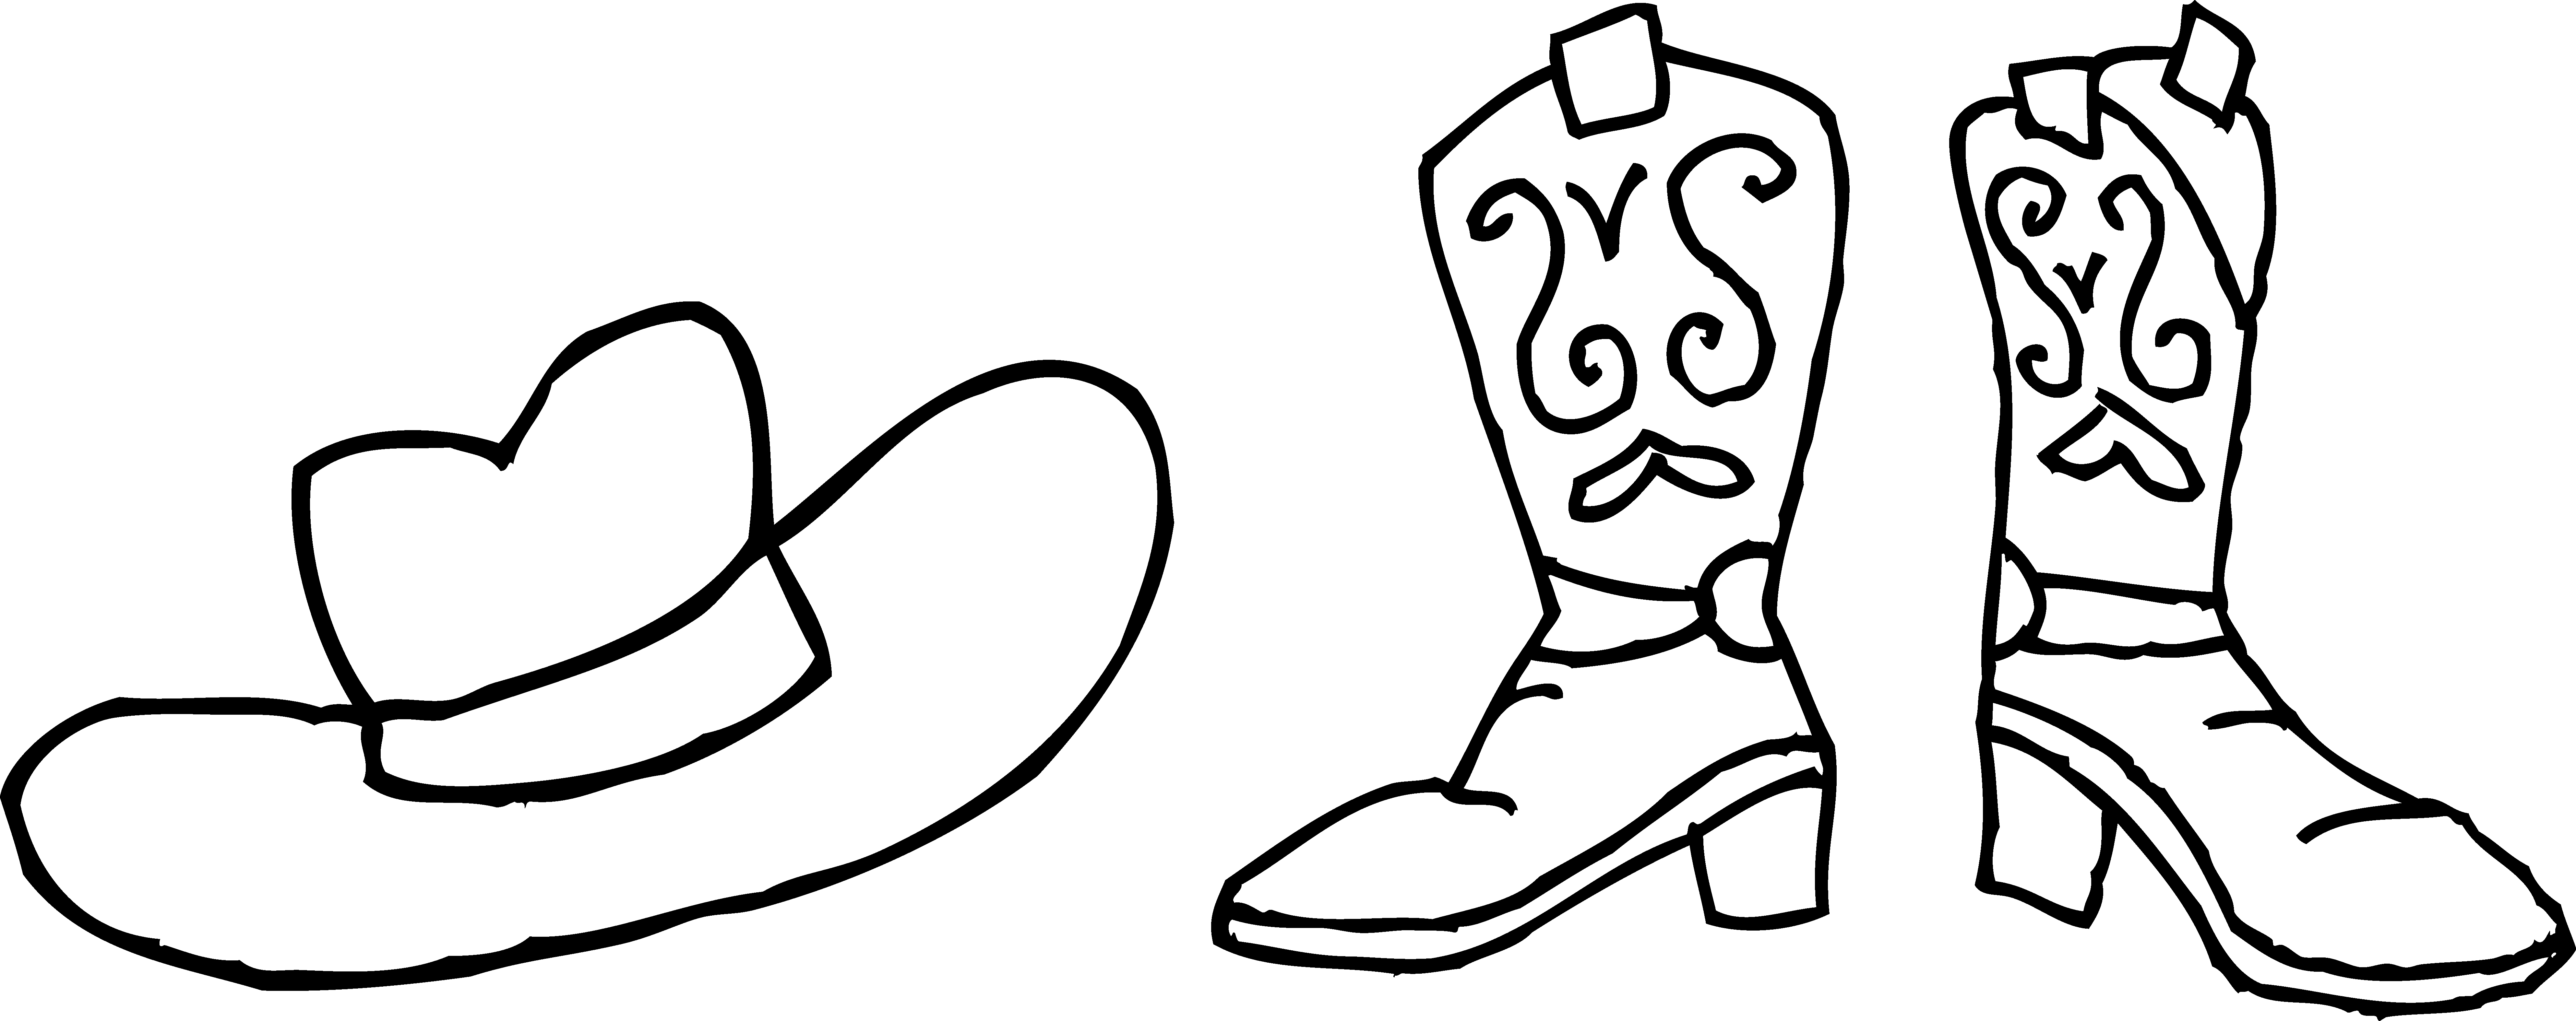 Printable coloring pictures of cowboy boots - Cow Boy Boots Black Adn White Clipart